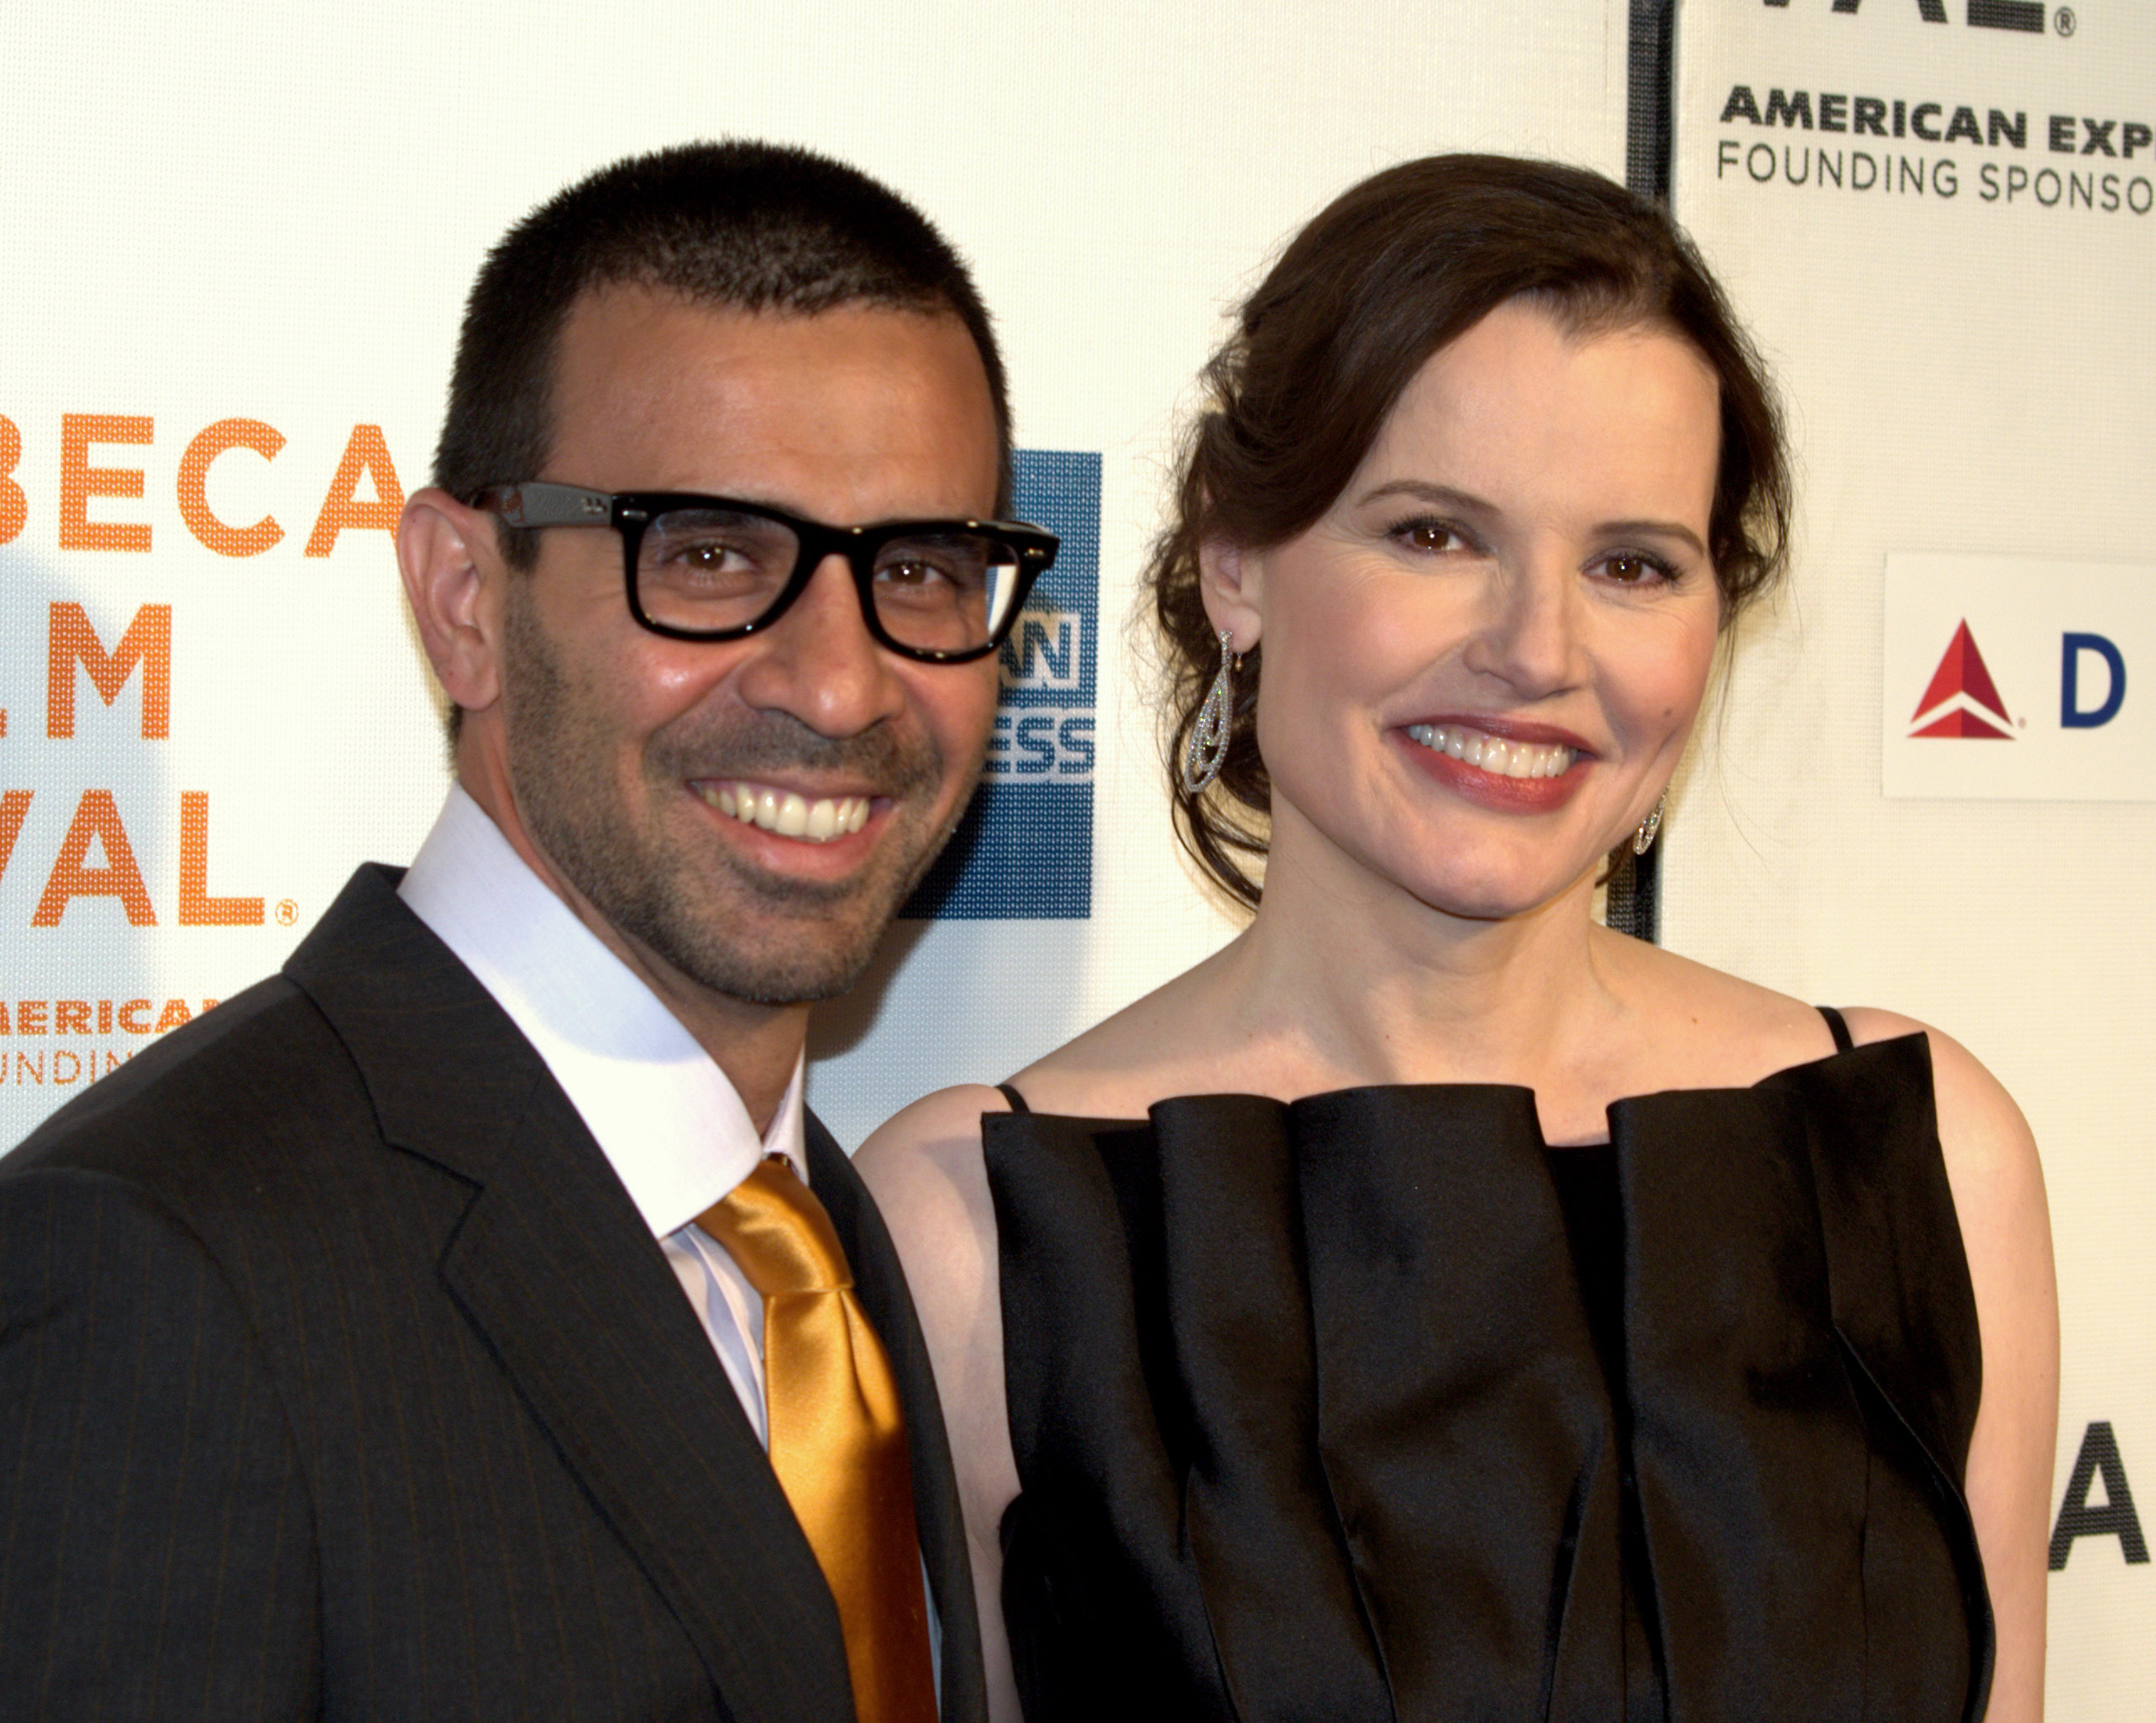 Geena Davis and reza jarrahy